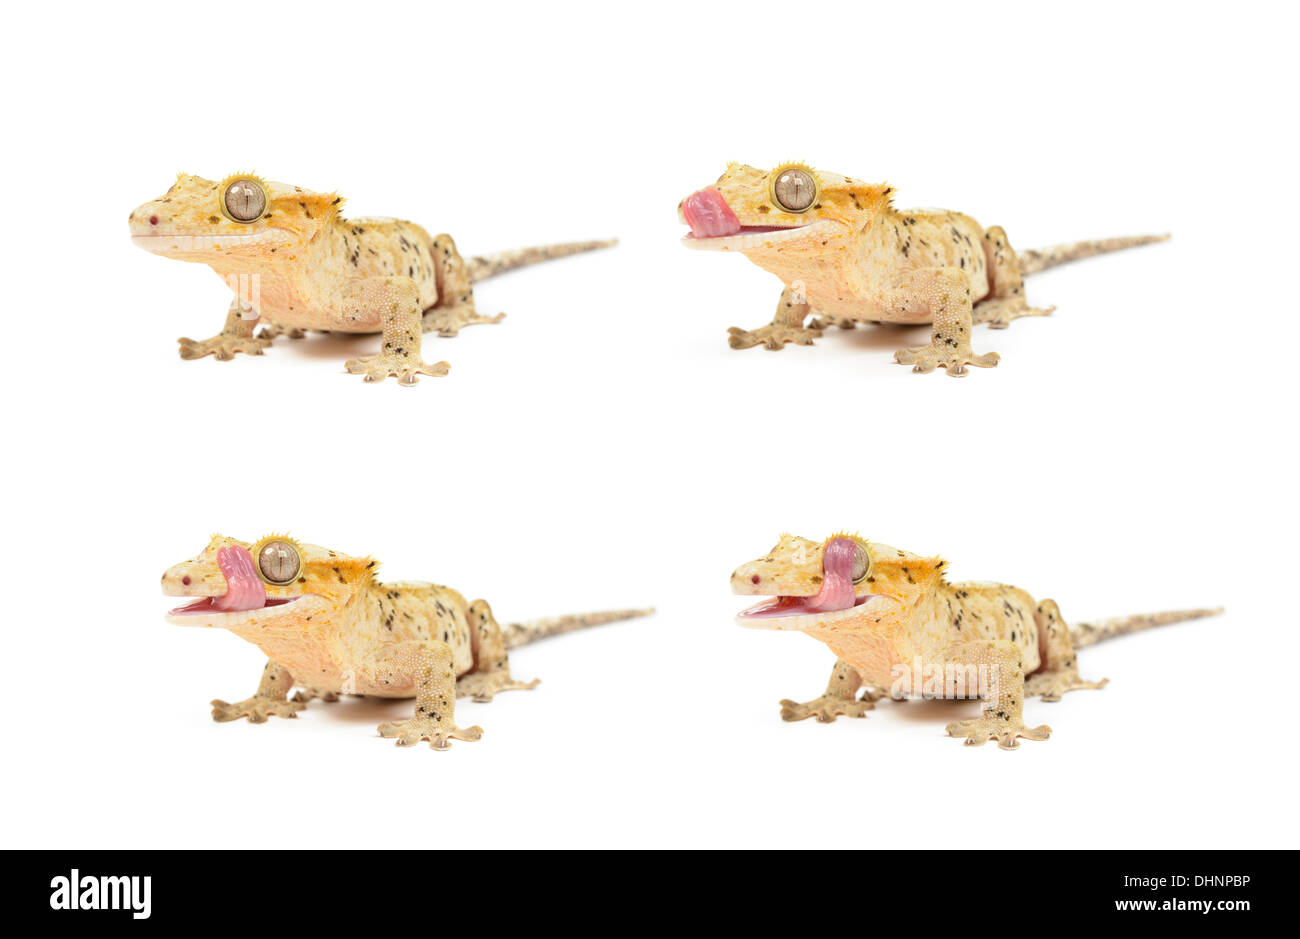 Several Crested geckos on white background. - Stock Image